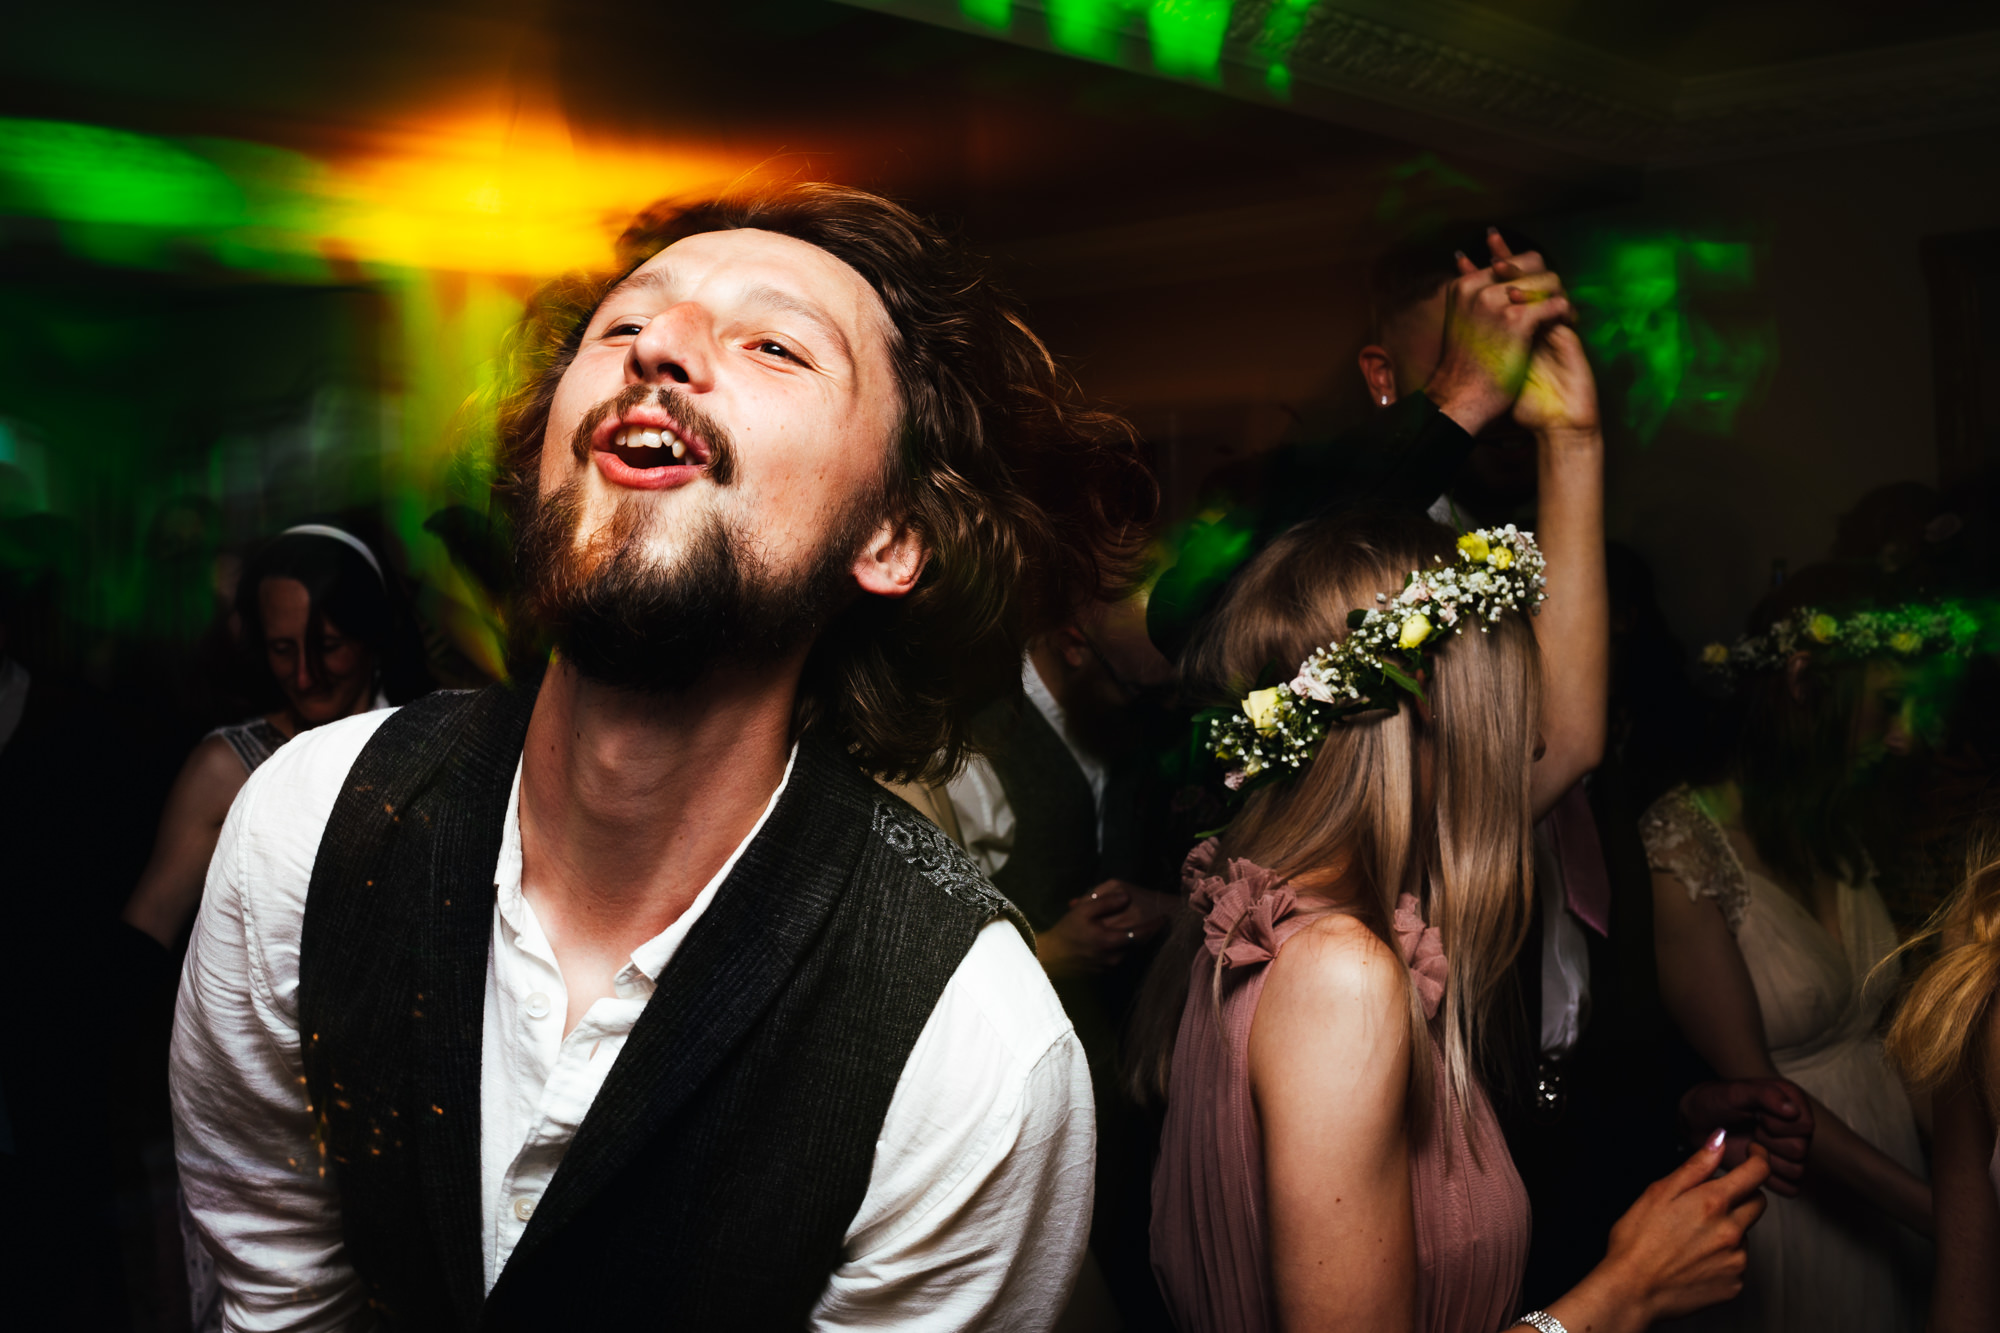 Wedding Photography Nottingham - Guy busting out some moves on wedding dance floor backed by green and yellow lights